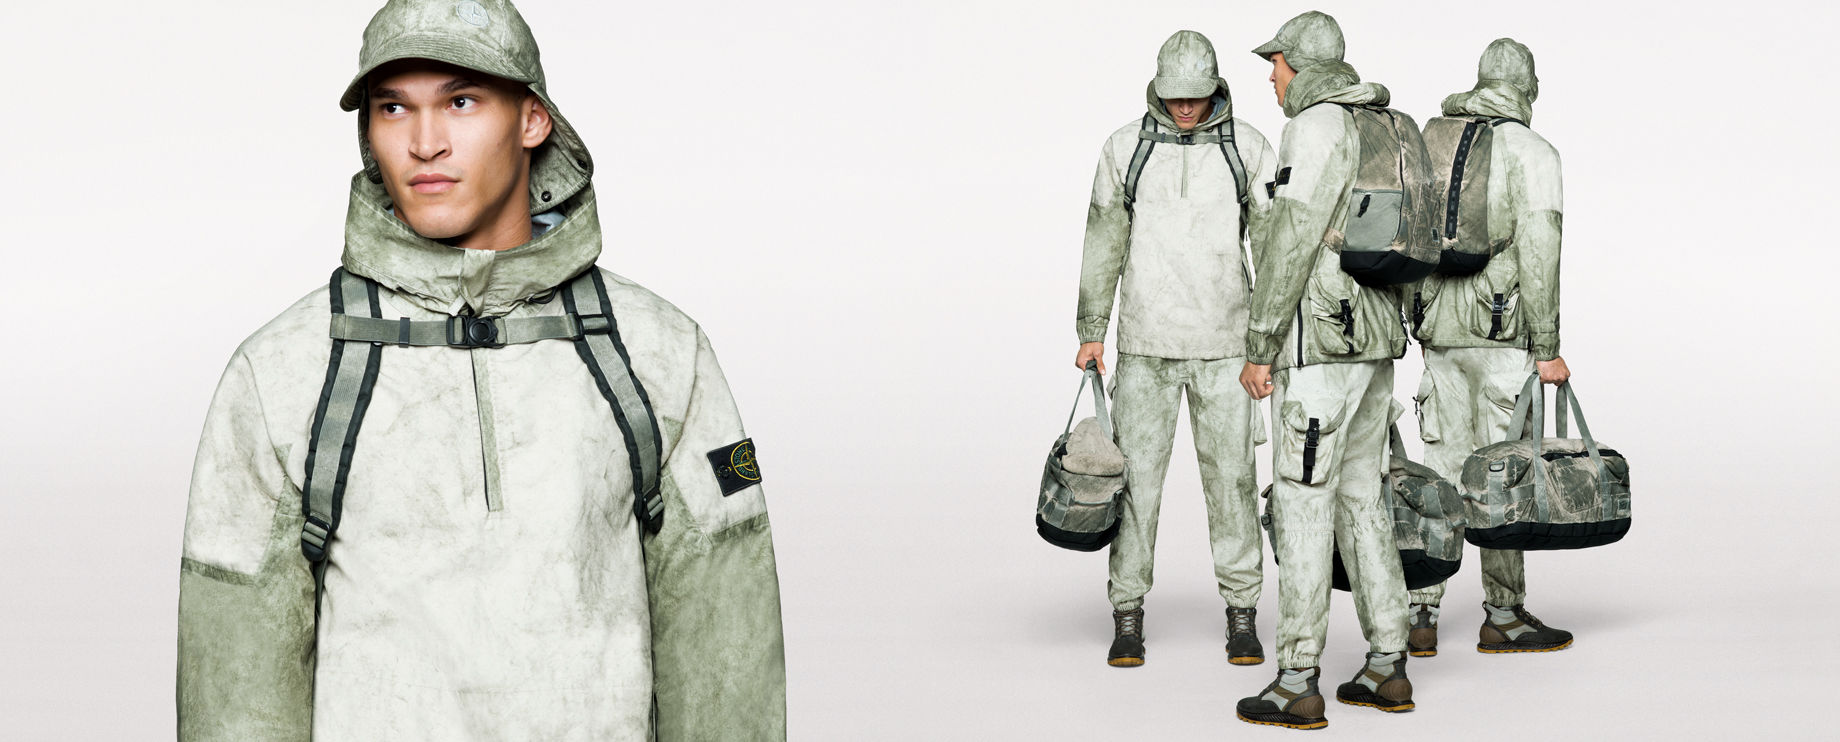 Four images of the same model, showing the close up, front, side and back view of him wearing pants, a parka with high collar, a cap with neck flap, a backpack with sternum strap and carrying a duffle bag, all in a matching khaki and green pattern.